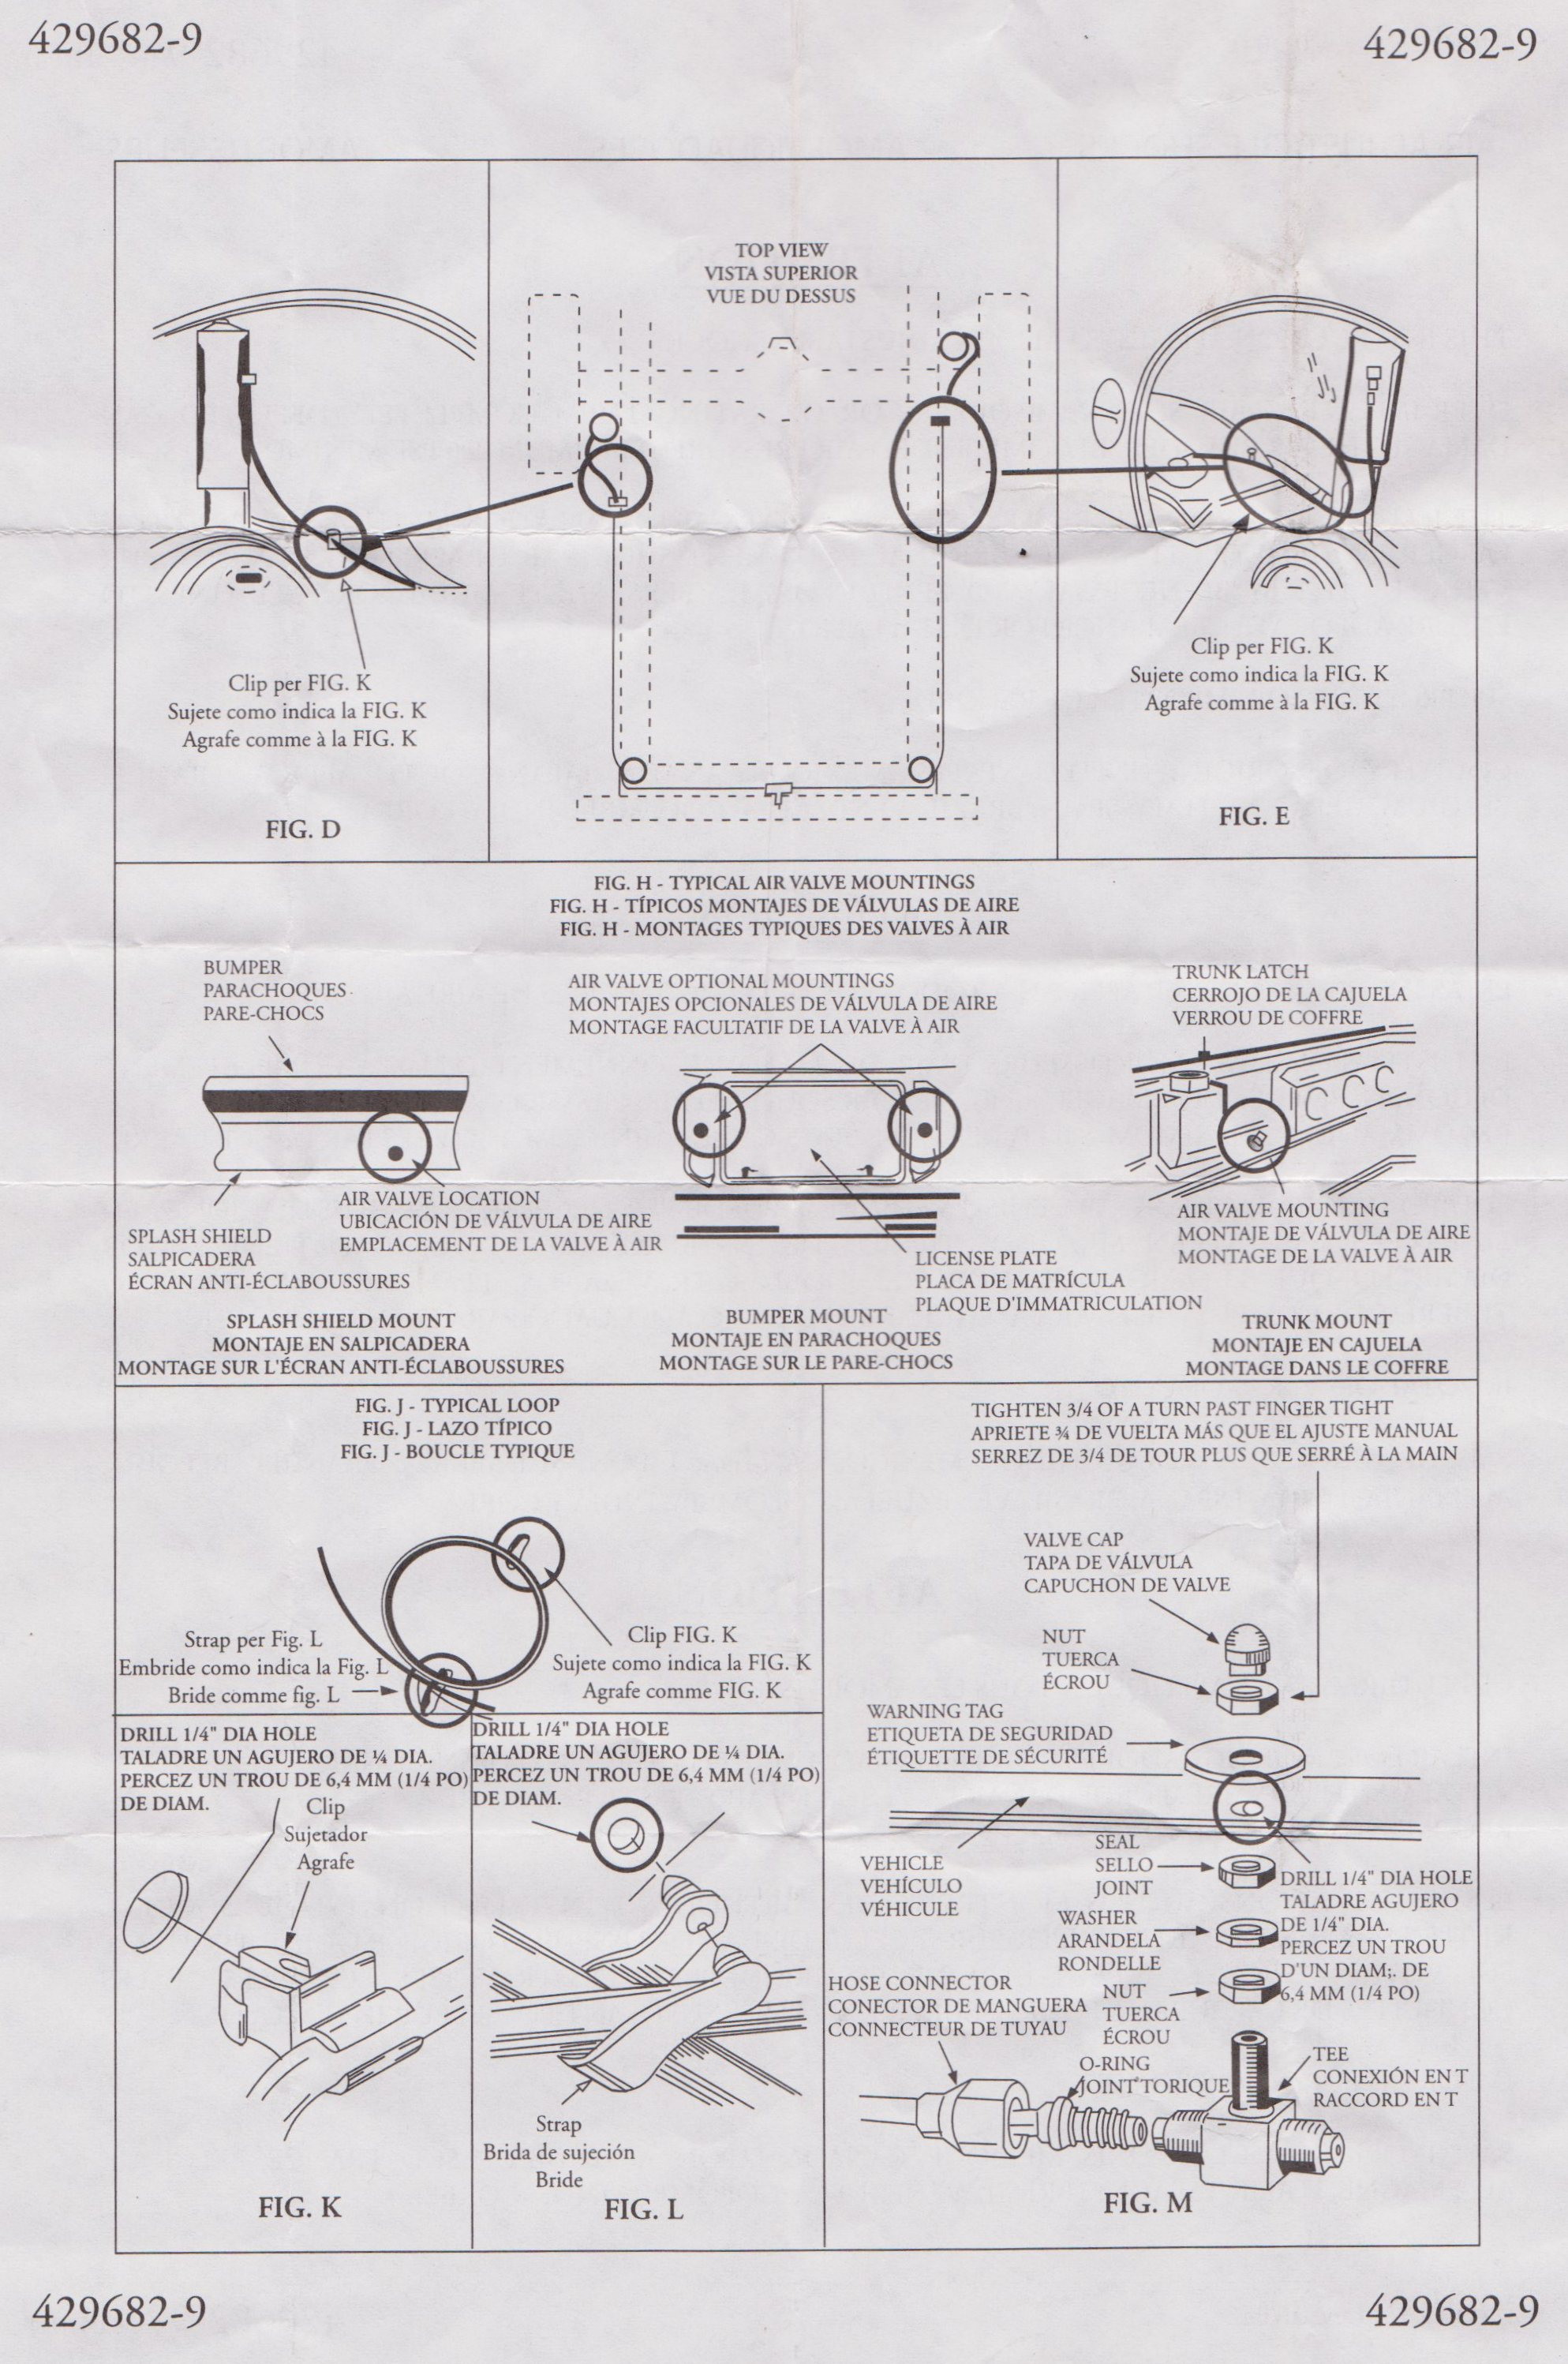 Monroe shocks installation instructions